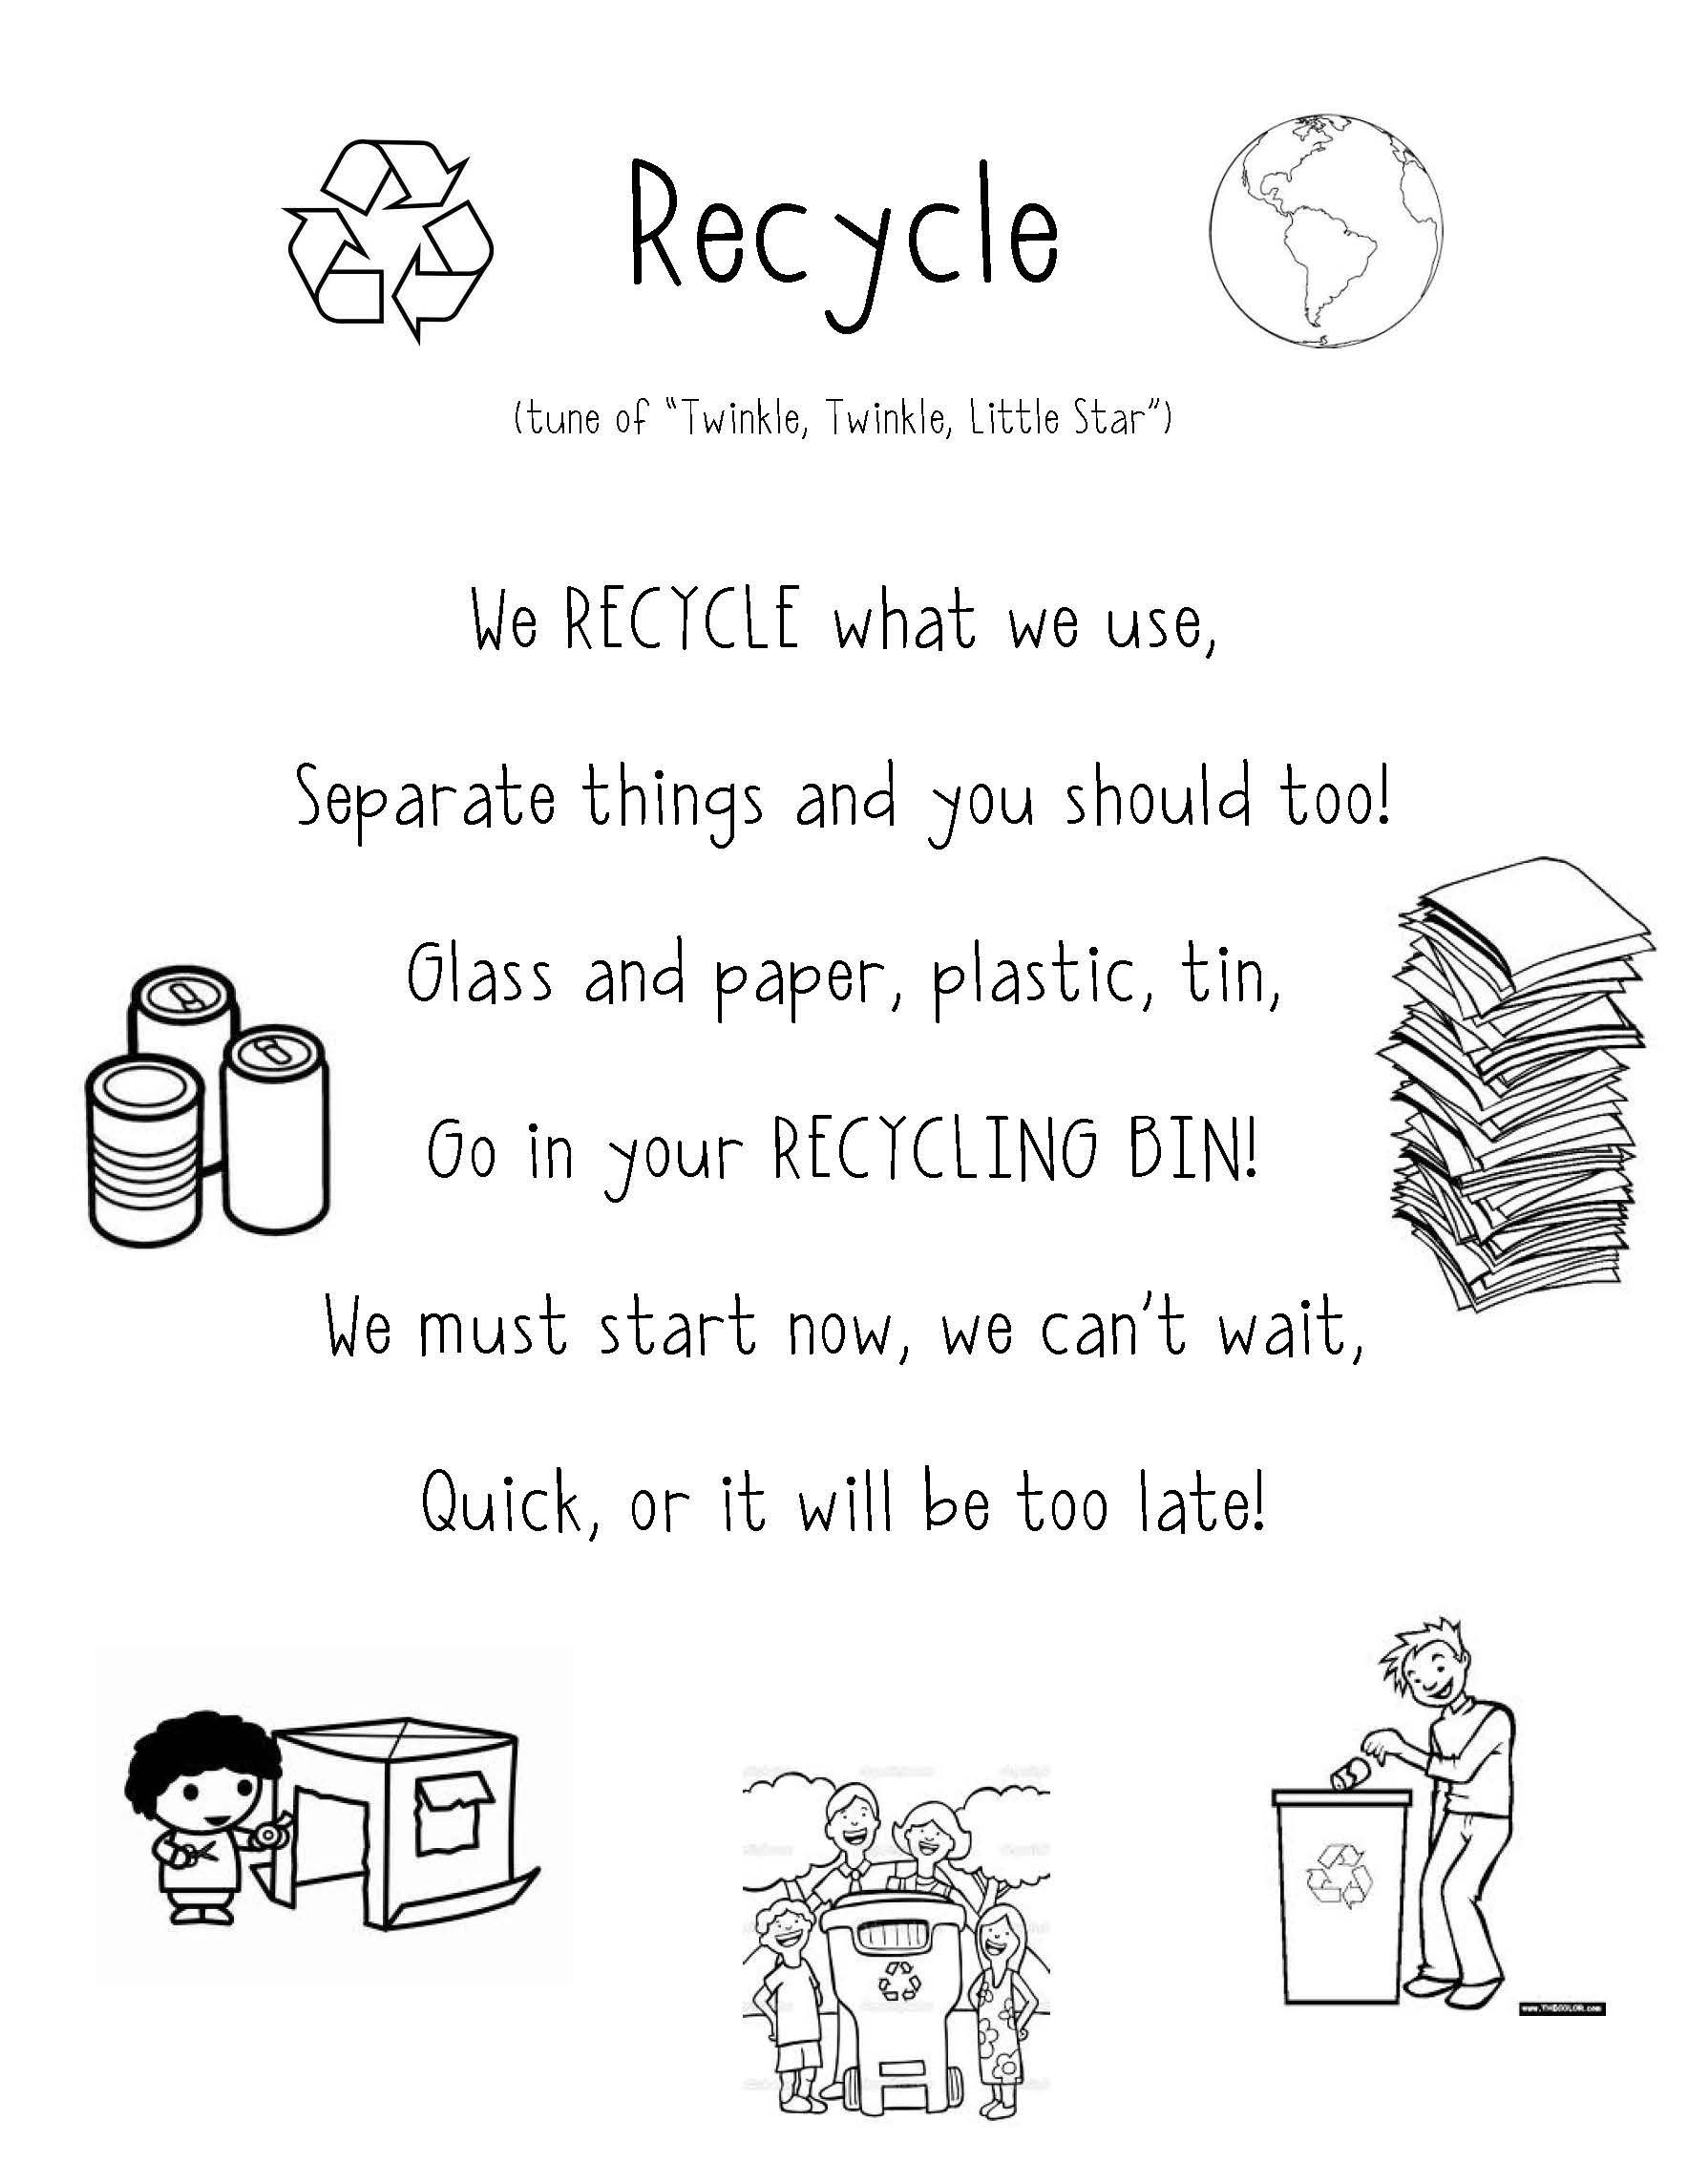 Recycling Worksheets for Middle School Recycle Poem Super Cute for Preschool and Teaching Students